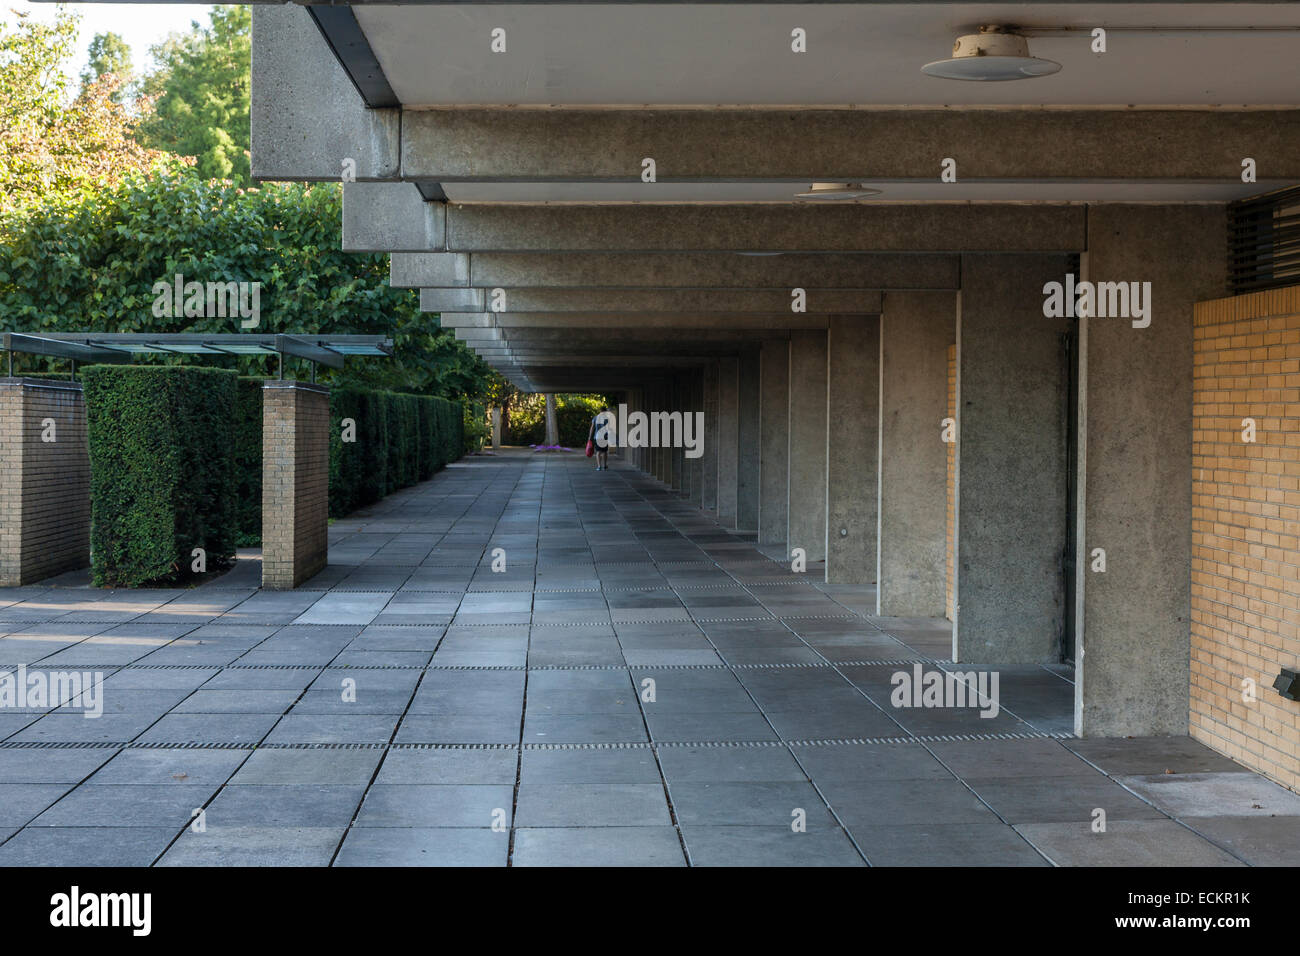 Covered walkway around the quadrangle, St Catherine's College, Oxford, built in 1962 and designed by Arne Jacobsen. - Stock Image